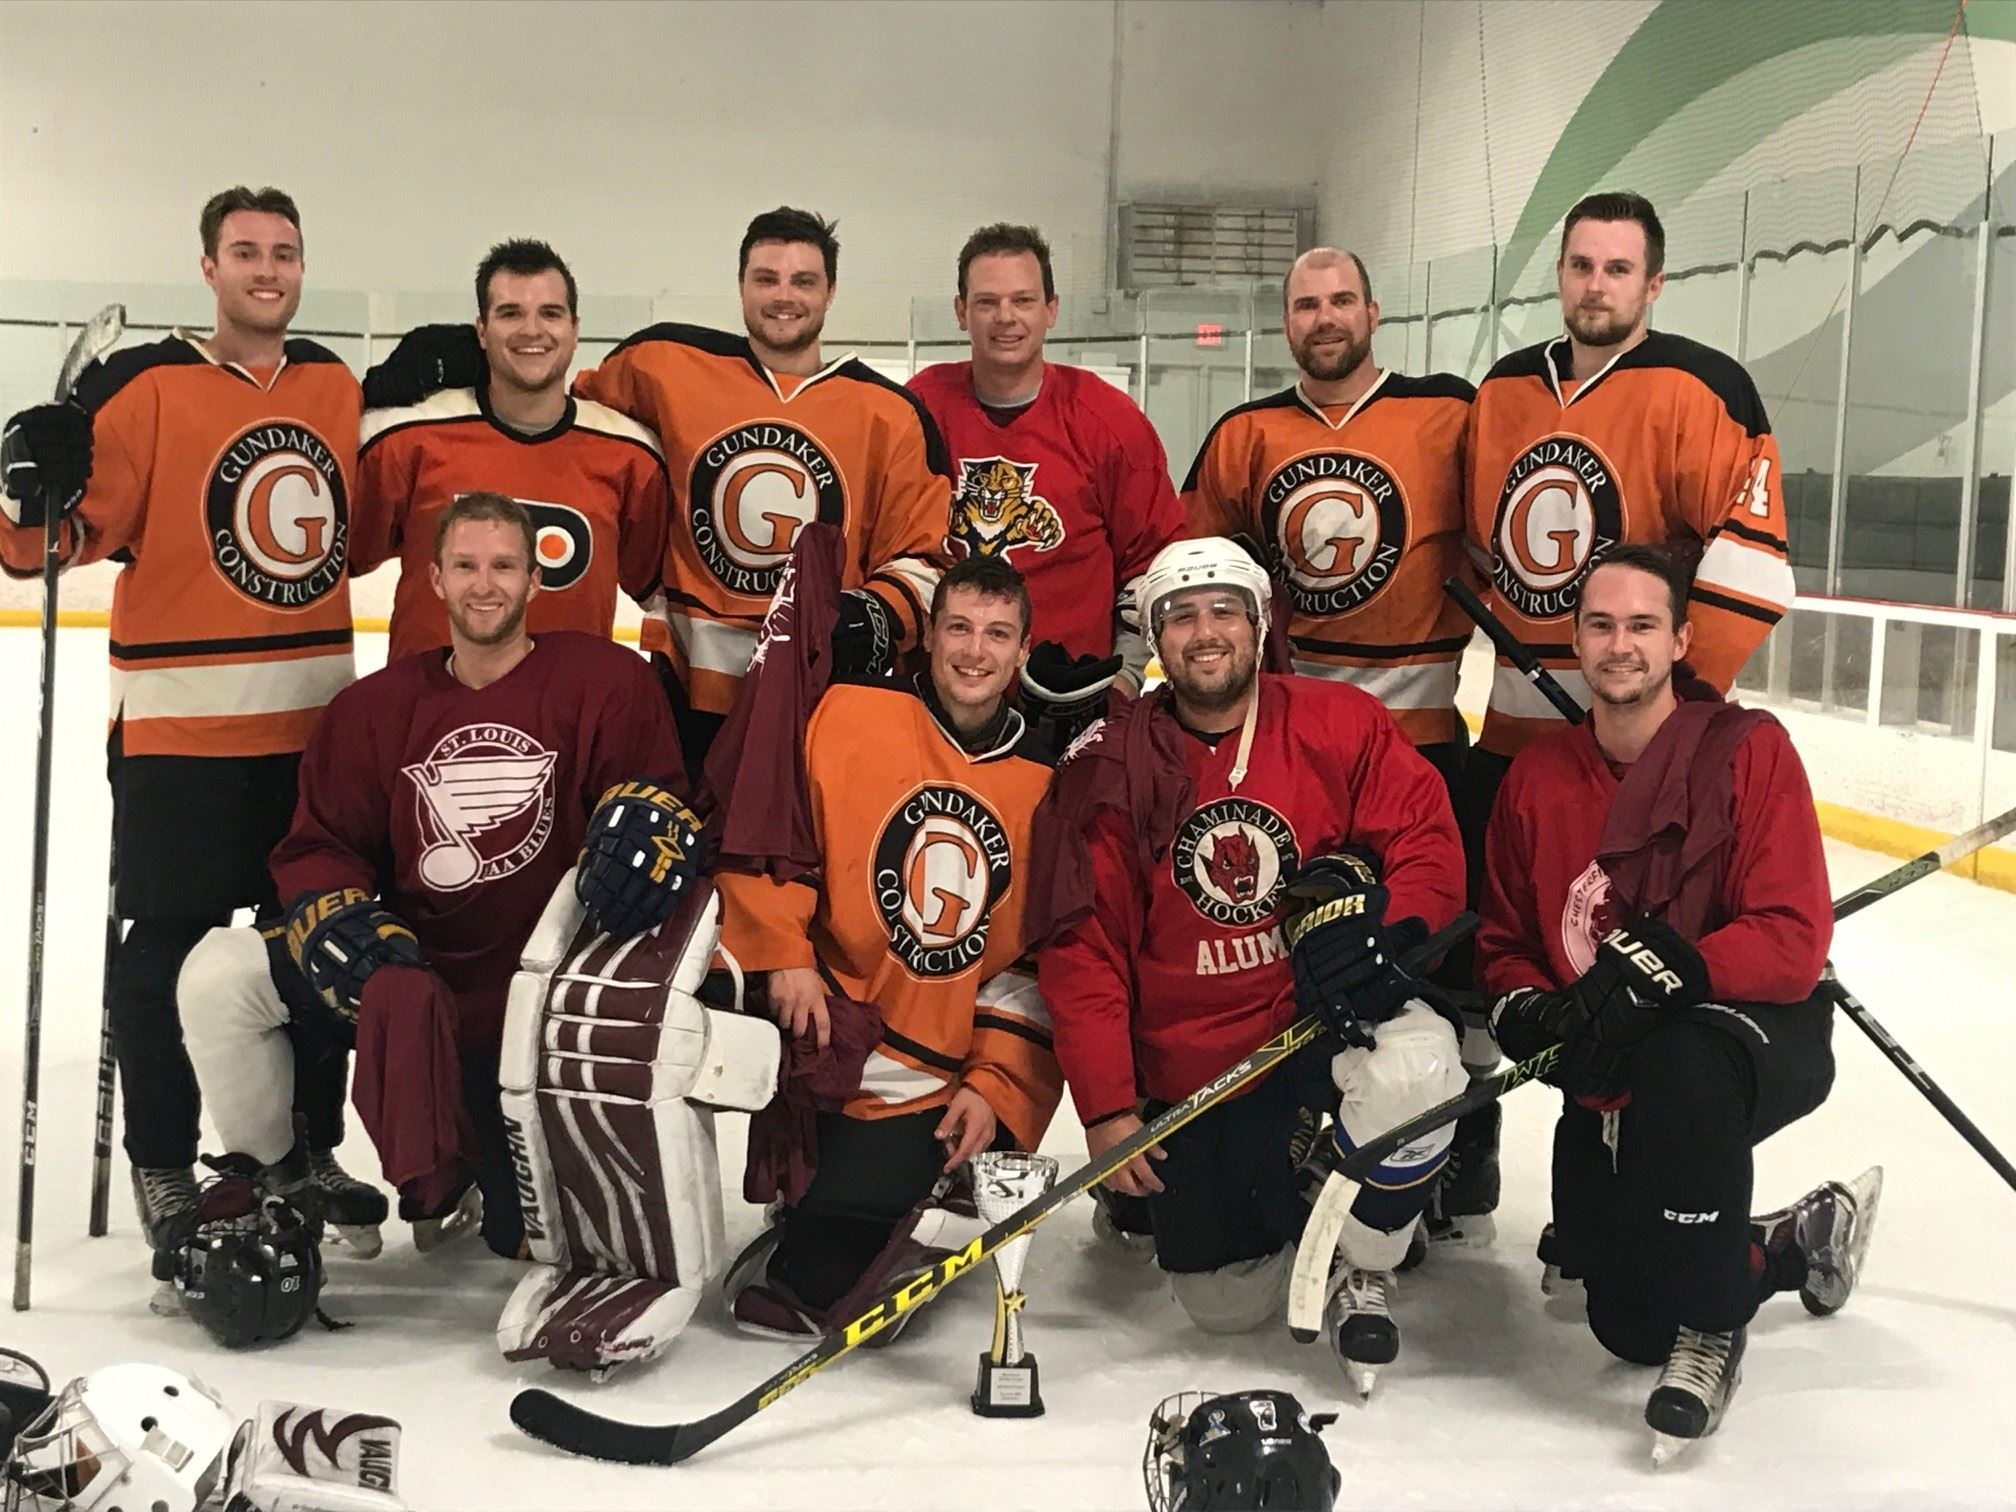 BHL Spring 18/19 Advanced League Champions: Niemann and Rourke